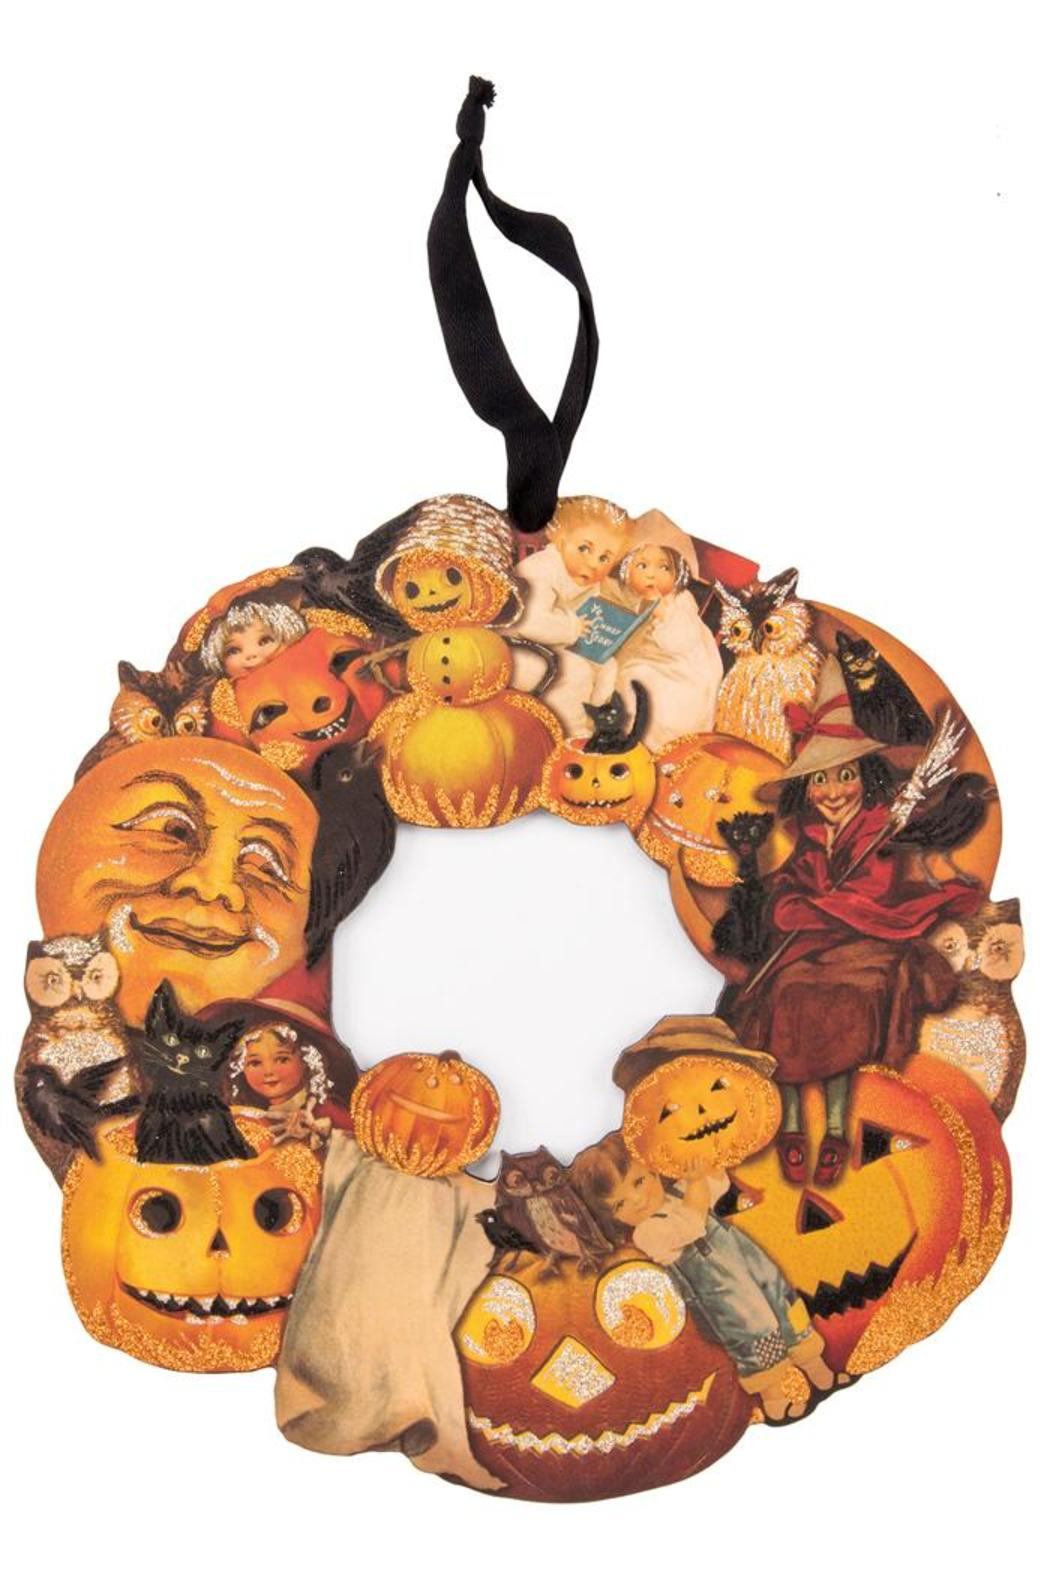 Primitives By Kathy Halloween Vintage Wreath From Boulder